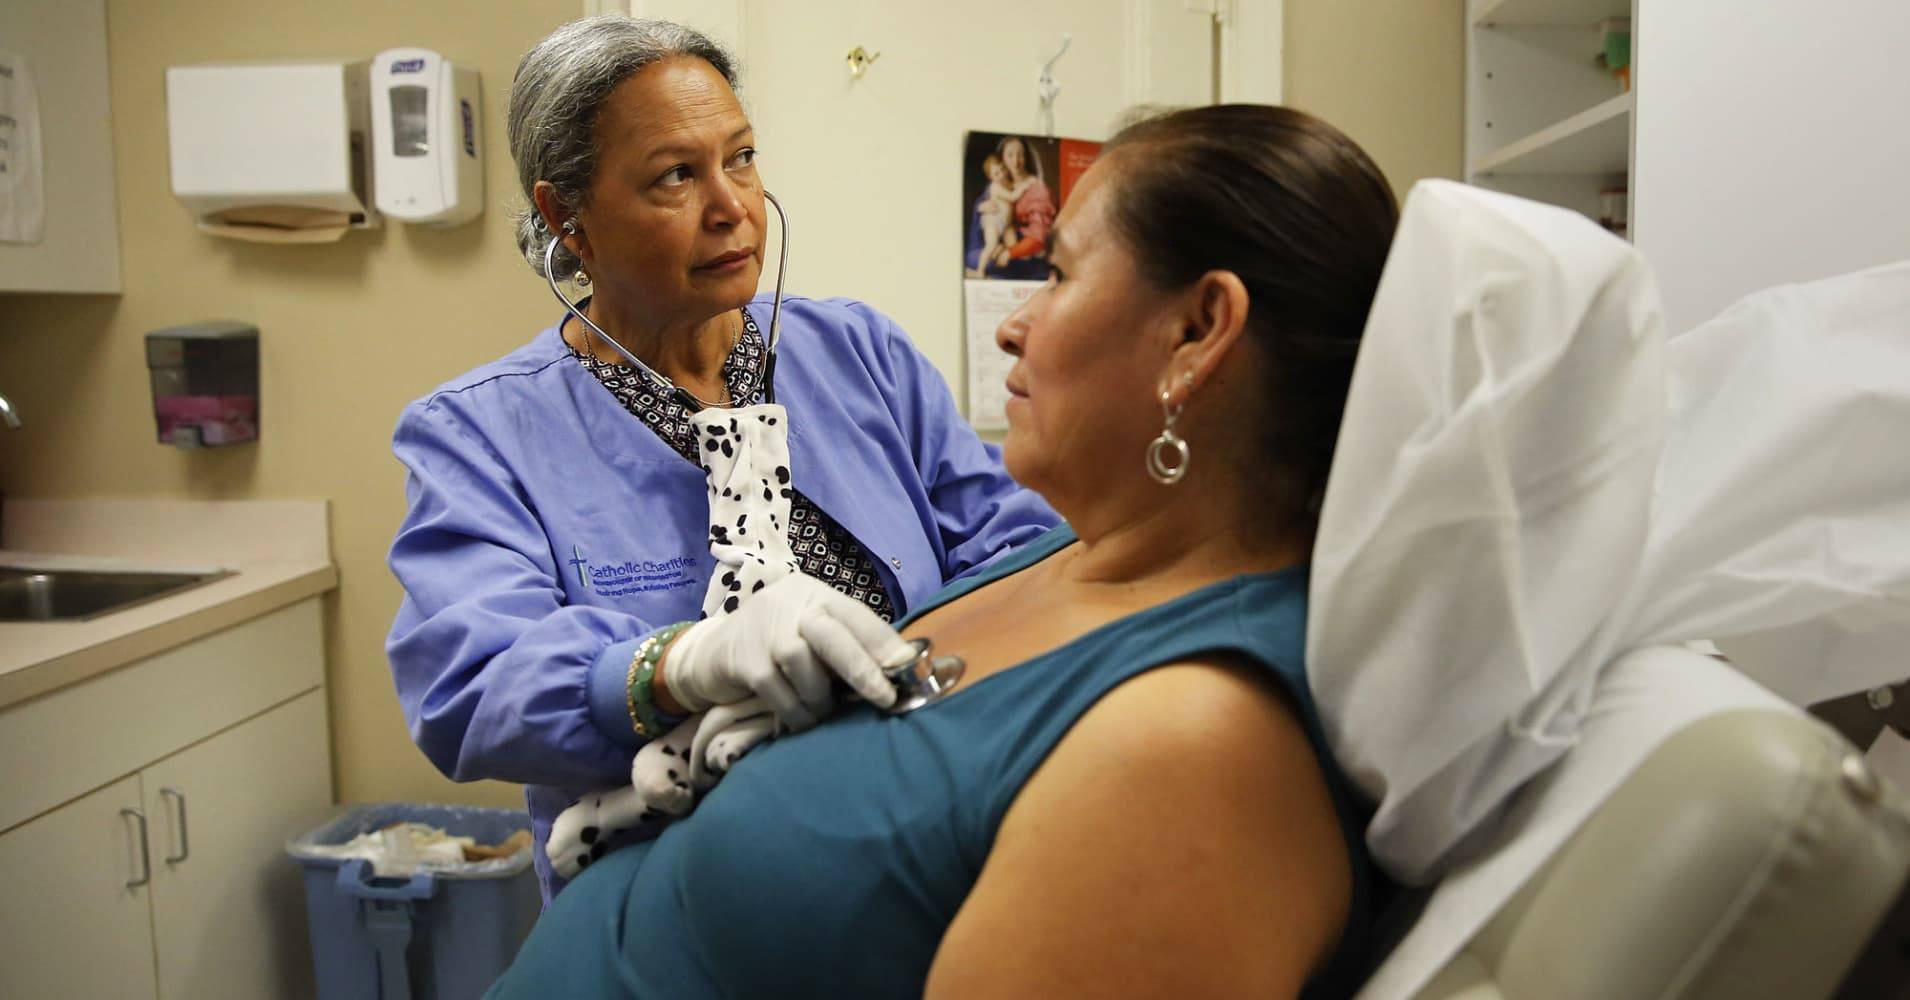 A nurse listens to a client's chest at the Spanish Catholic Center agency of the Diocese of Washington Catholic Charities.